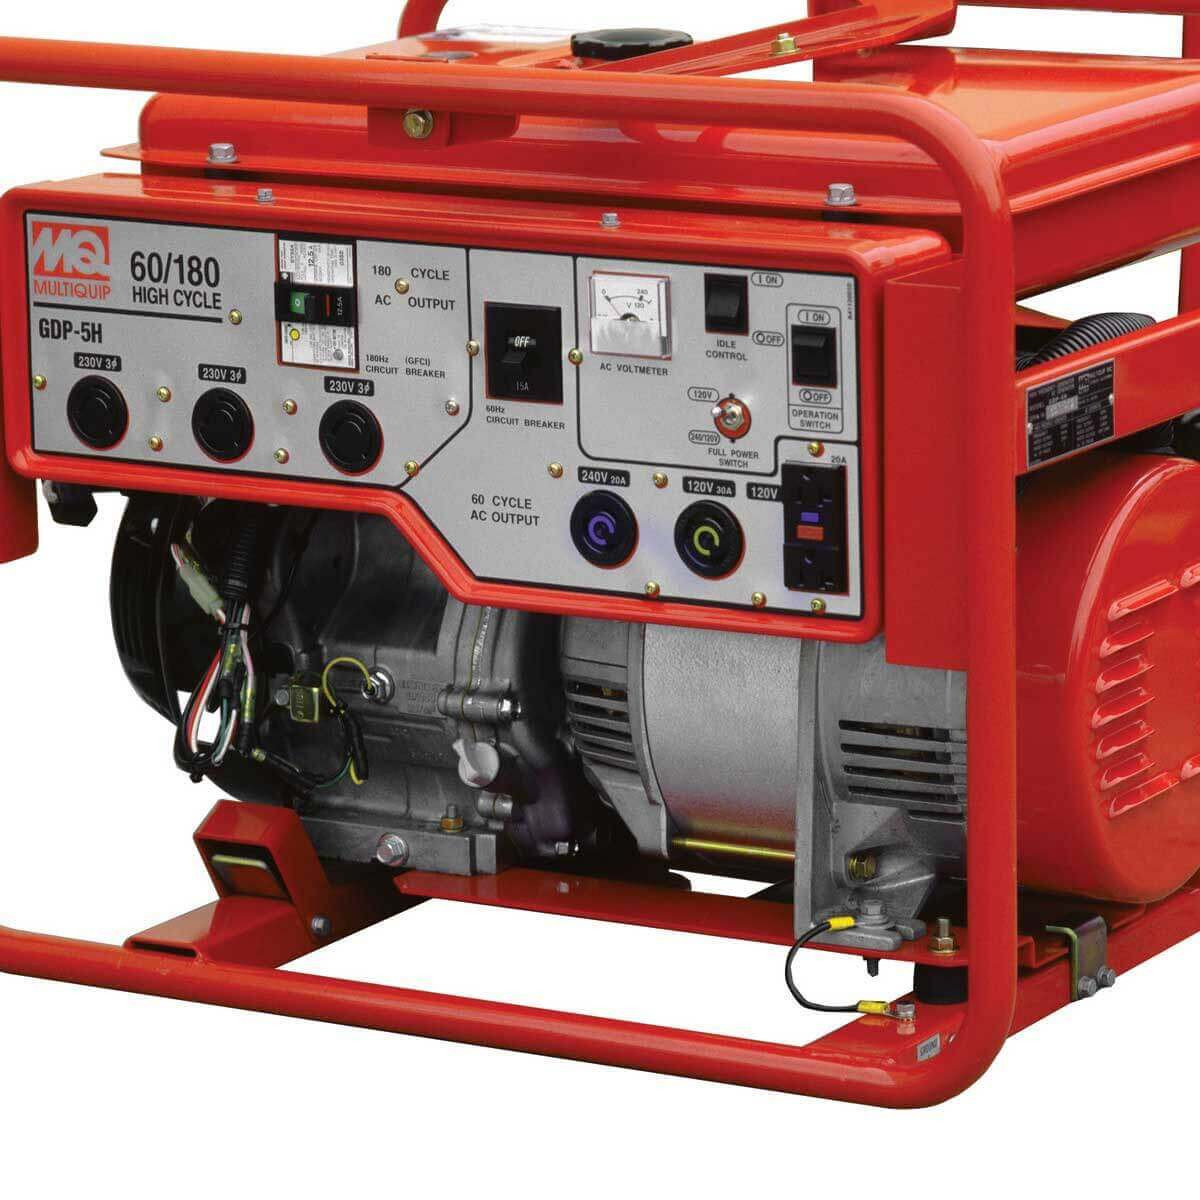 multiquip high-cycle generator